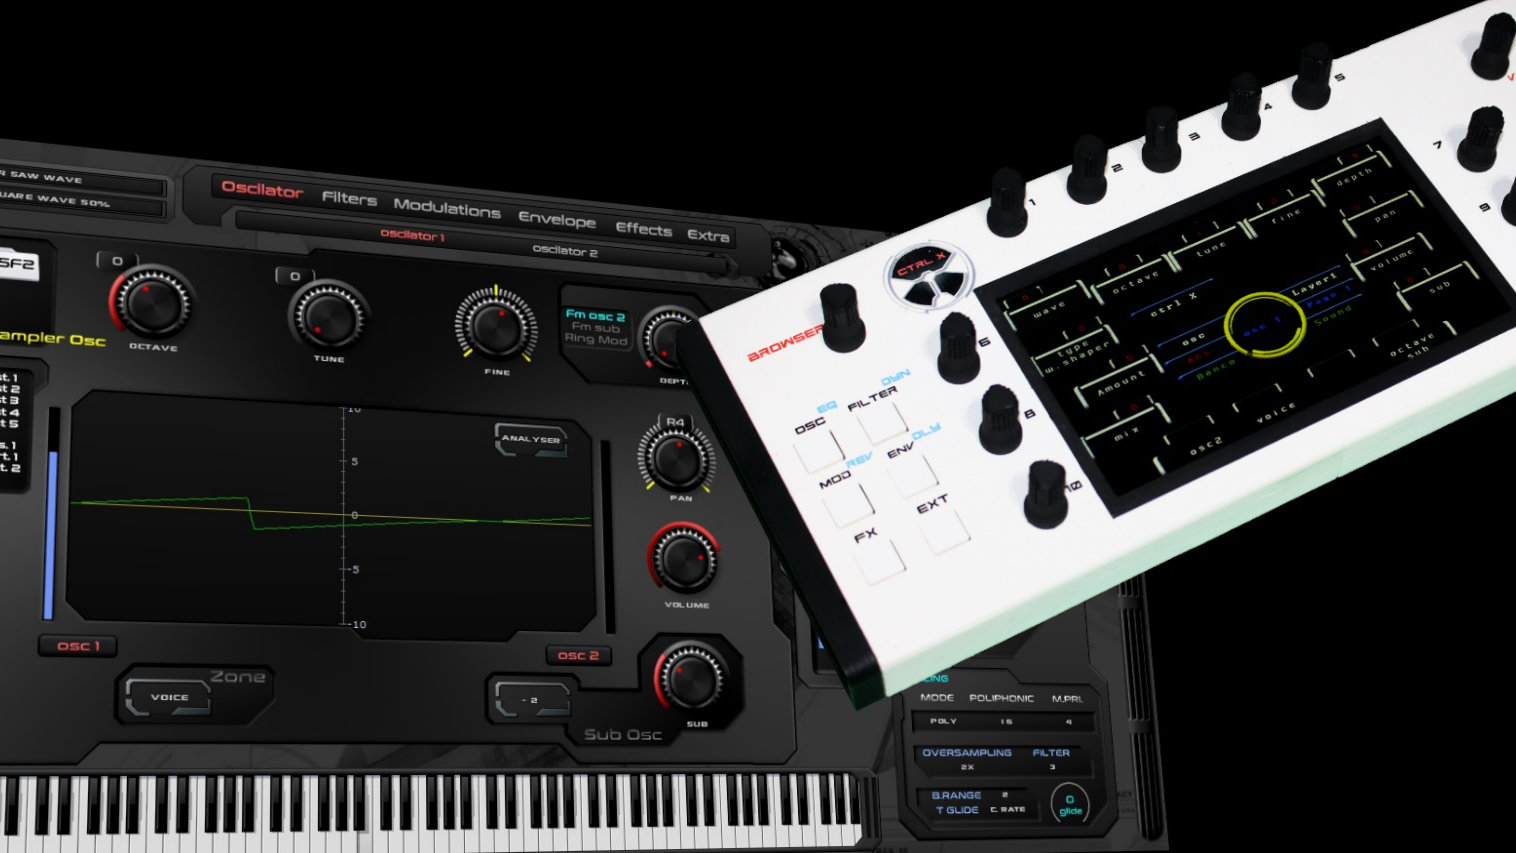 MATRIXSYNTH: Miclop Ctrl-X Open Source MIDI Controller and Sequencer